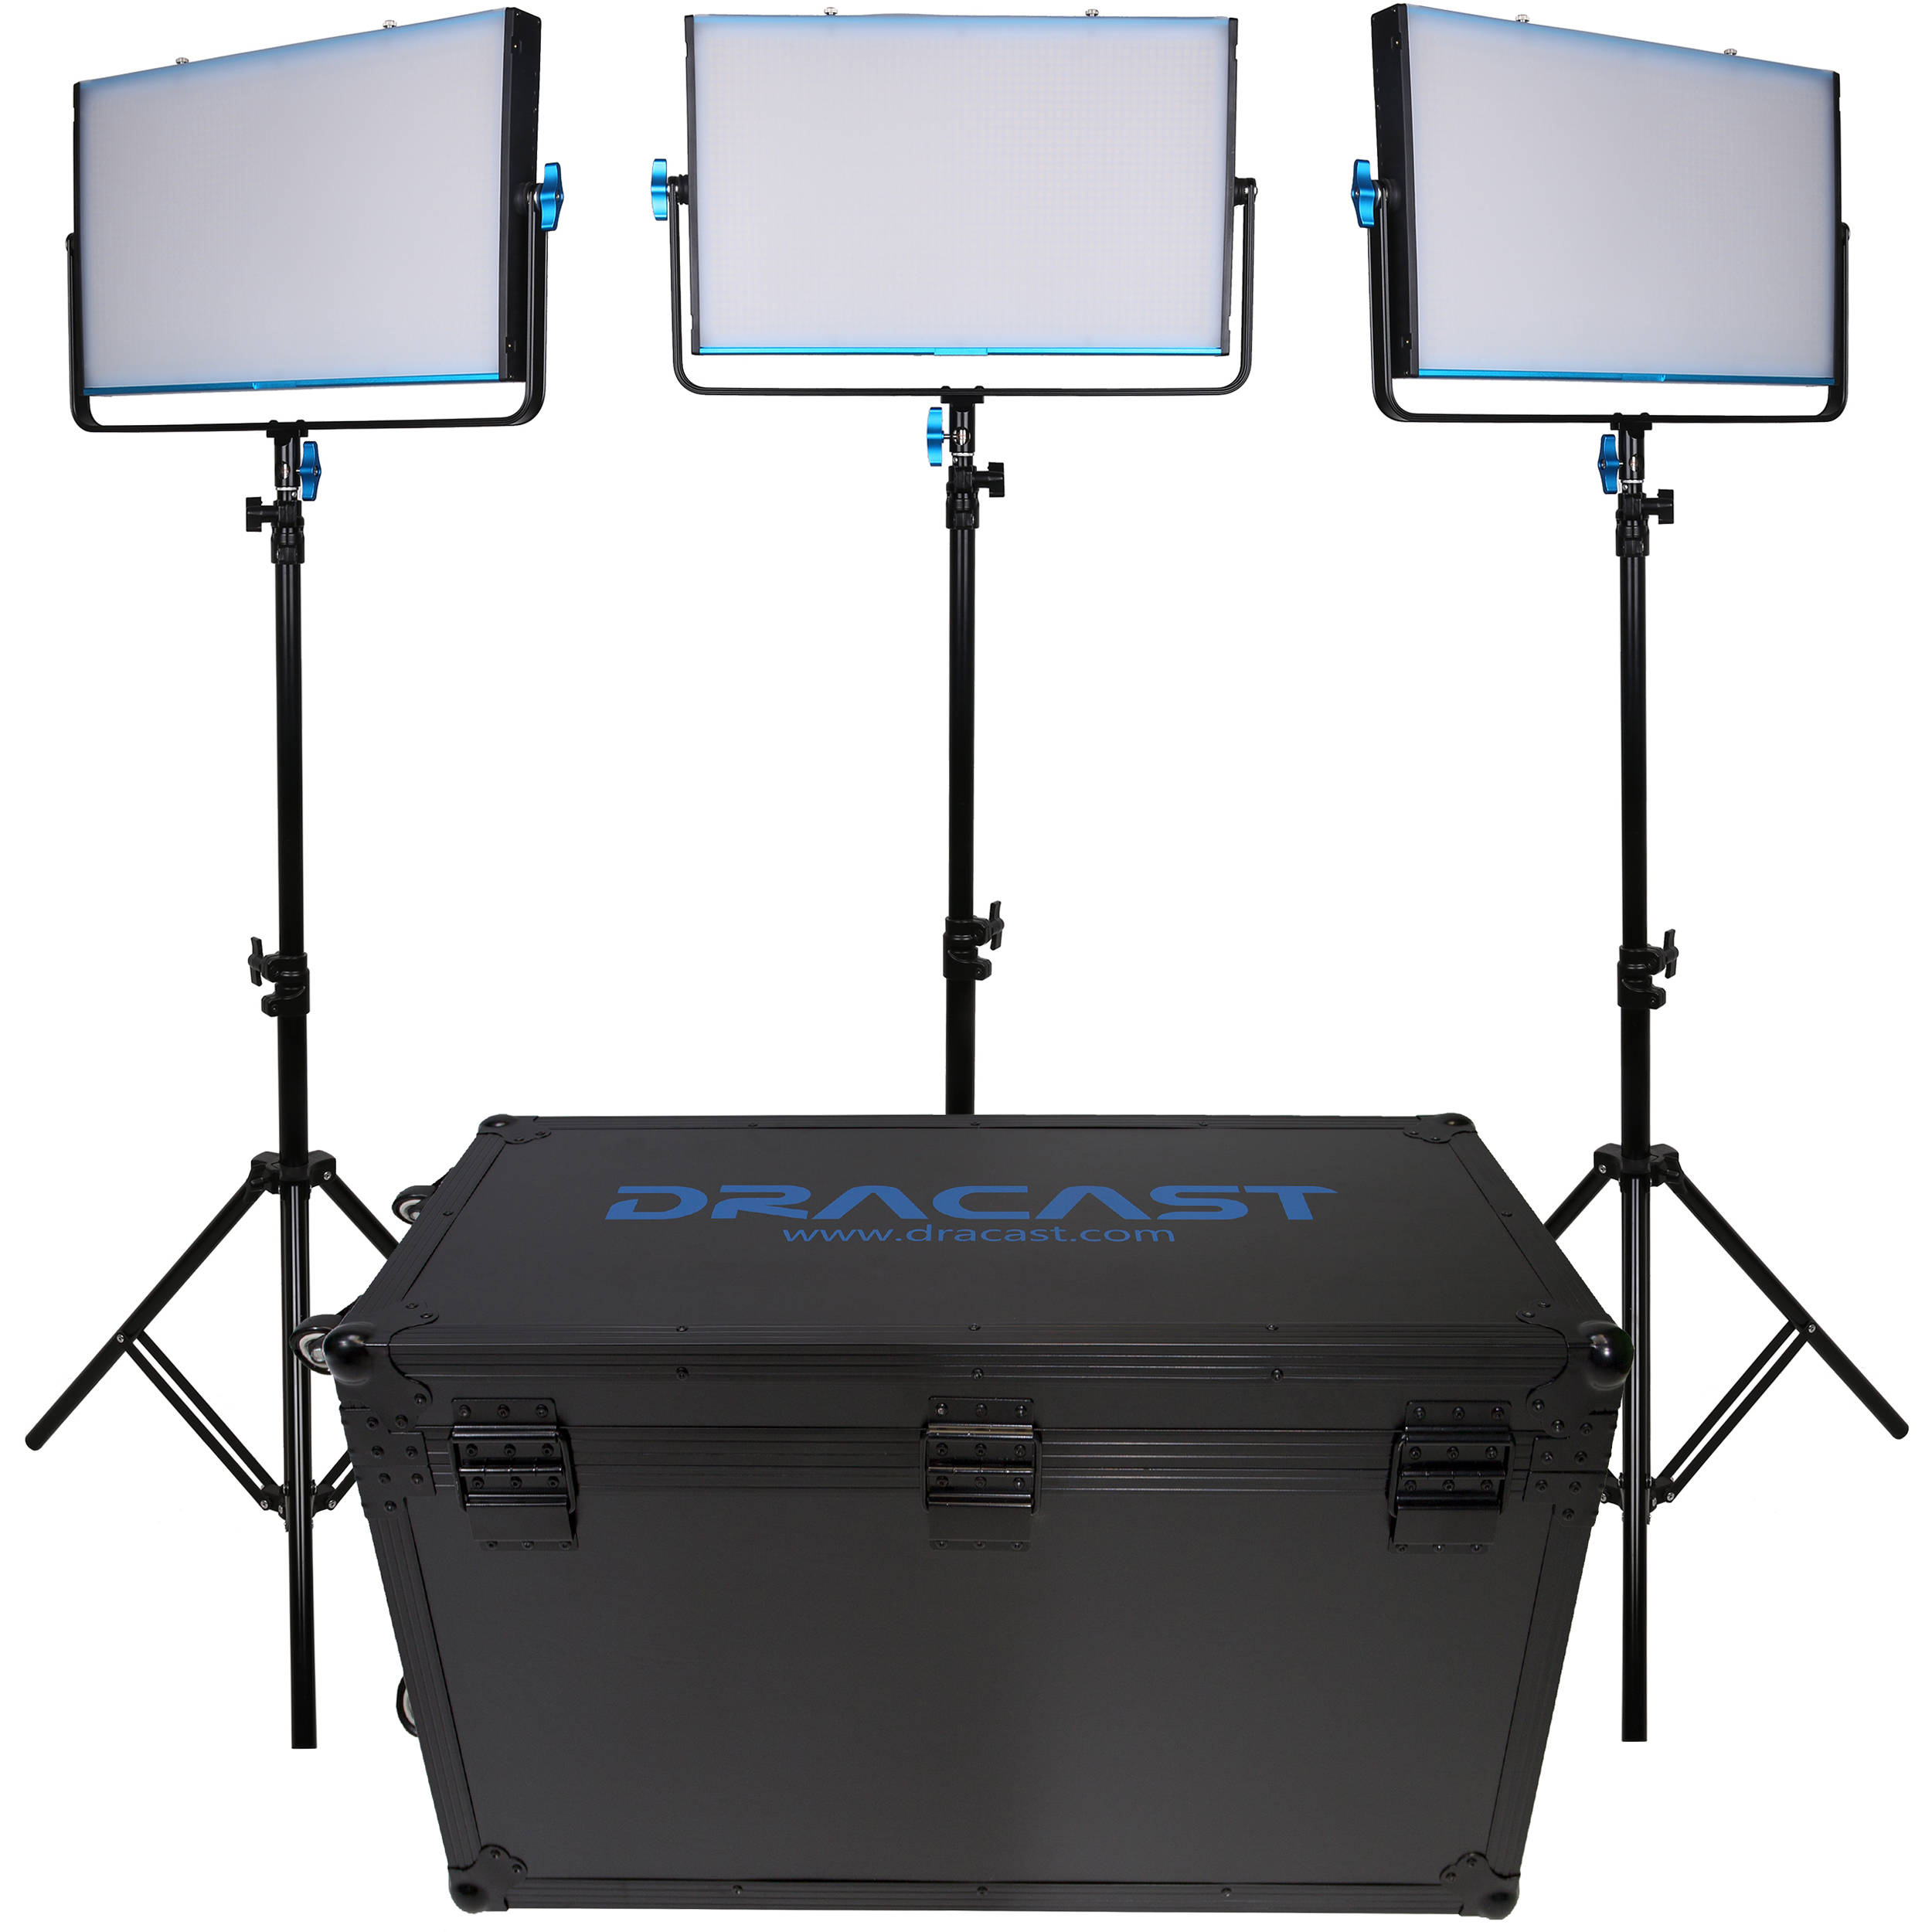 Studio Lighting On A Budget: 8 Awesome Lighting Kits To Fit Any Budget